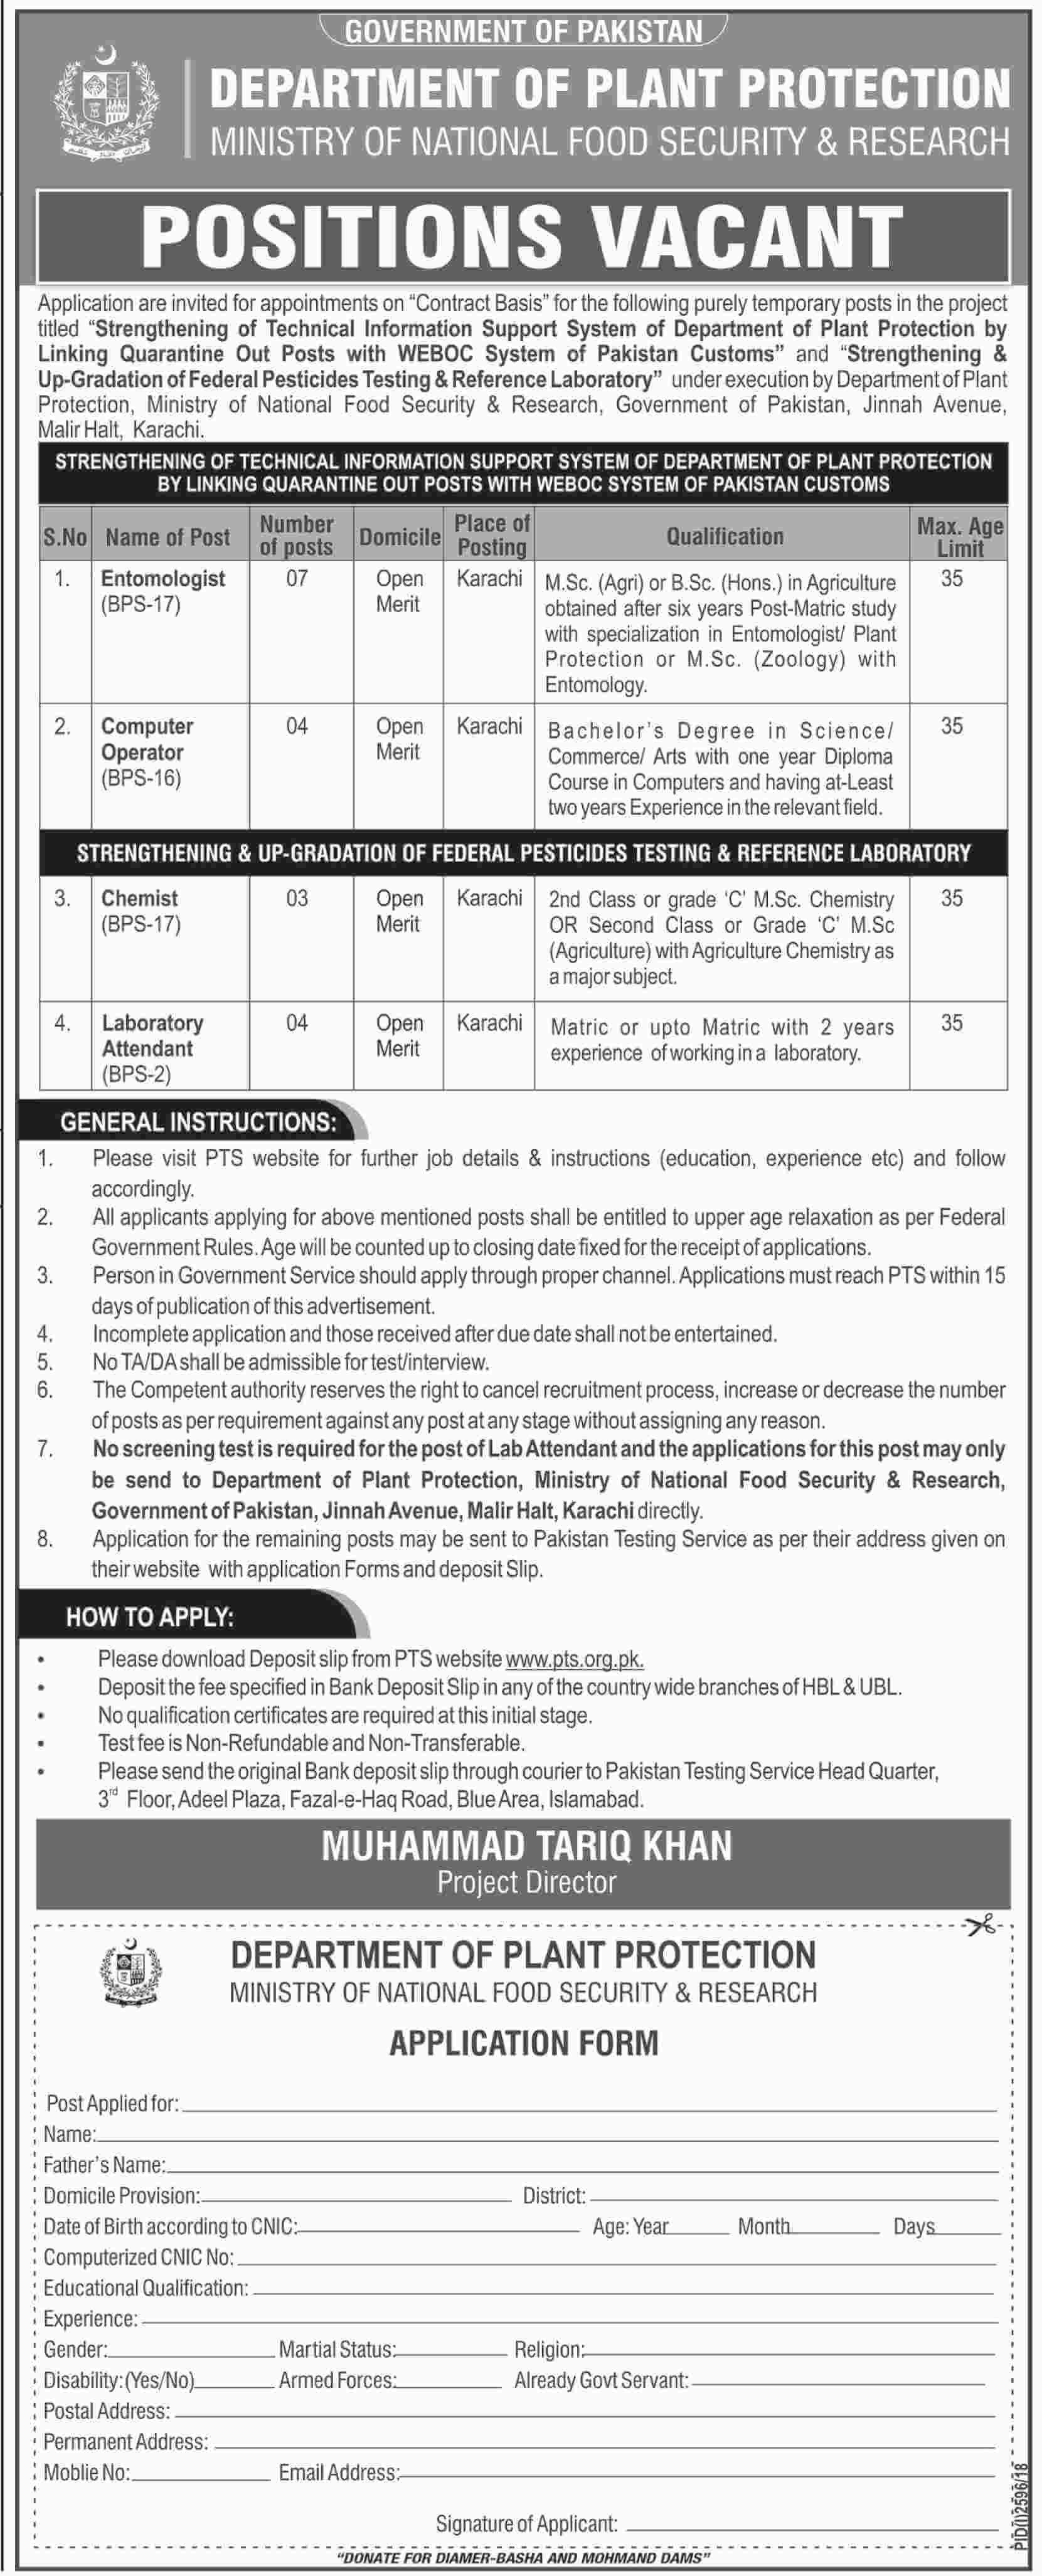 Ministry Of National Food Security & Research Jobs 2018 Government Pakistan  in Karachi on December, 2018 | Government